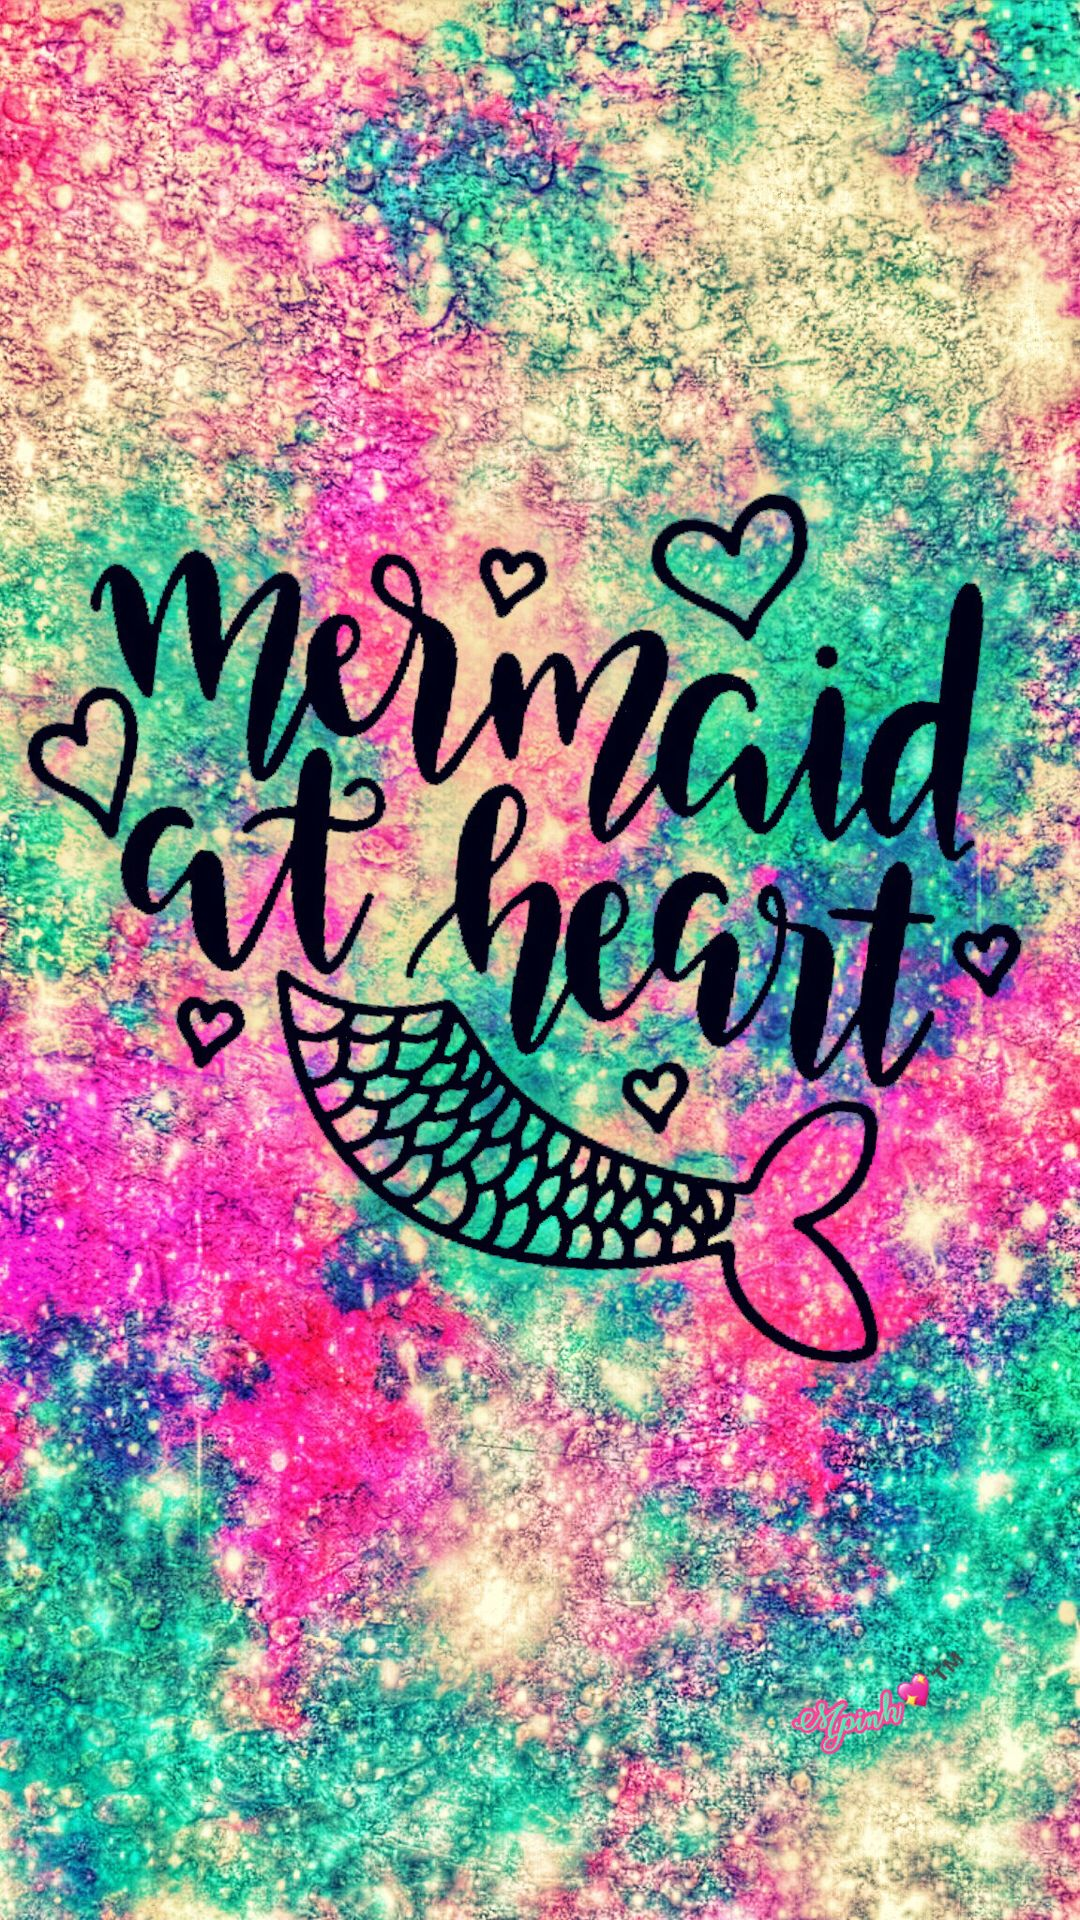 Mermaid At Heart Galaxy Wallpaper Androidwallpaper